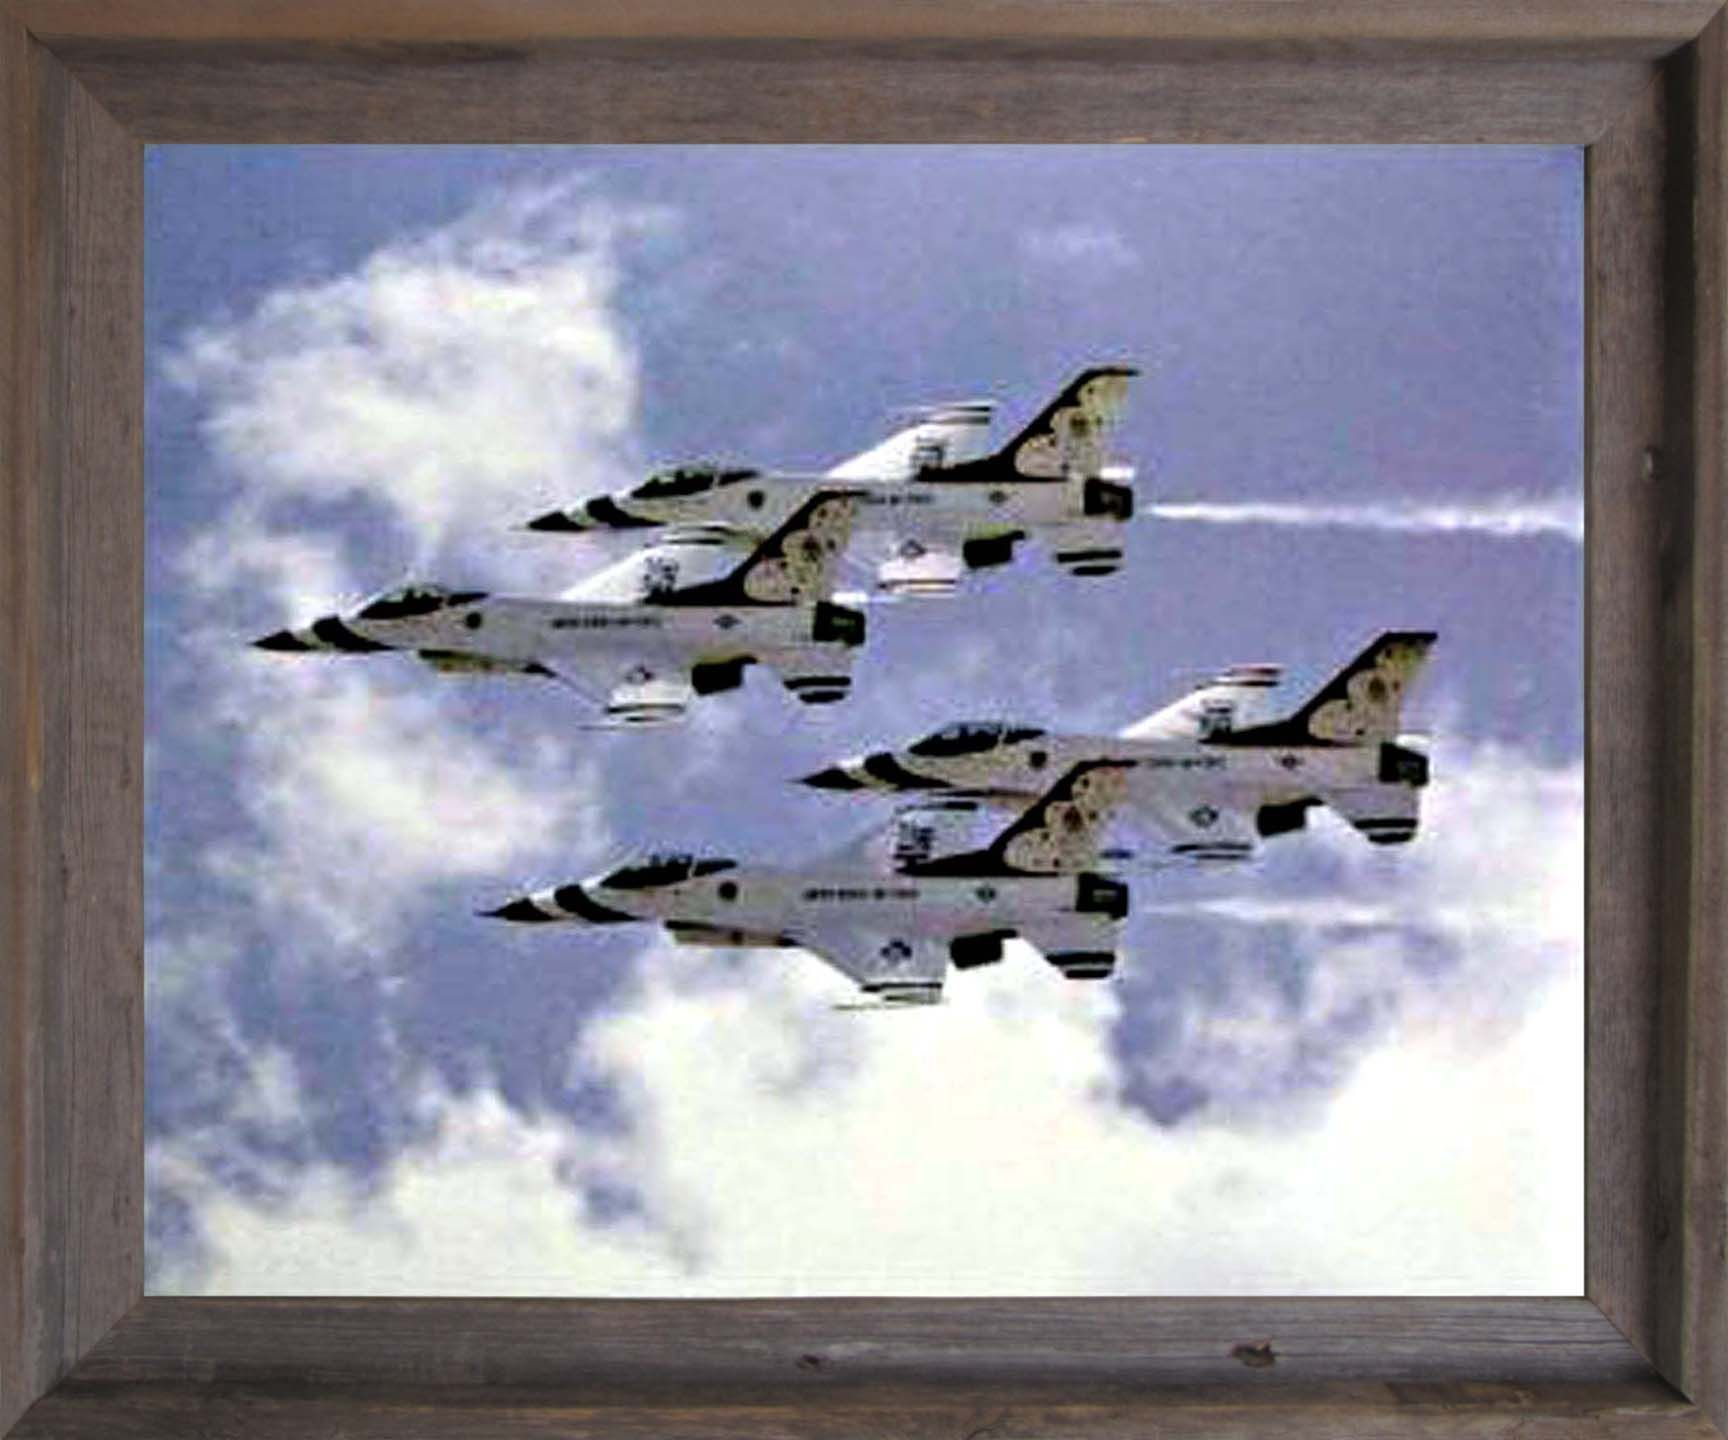 The Thunderbirds are the Air Demonstration Squadron, of the U.S. Air Force based at Nellis AFB, Las Vegas, Nevada. The aircraft support Air Force recruiting and retention programs. Its wooden barnwood  frame accentuates the poster mild tone. The frame is made from solid wood measuring 19x23 inches with a smooth gesso finish.  Impact posters gallery also offers high quality framed posters which are perfect for decorators on a budget. Hurry up! Make your order today.